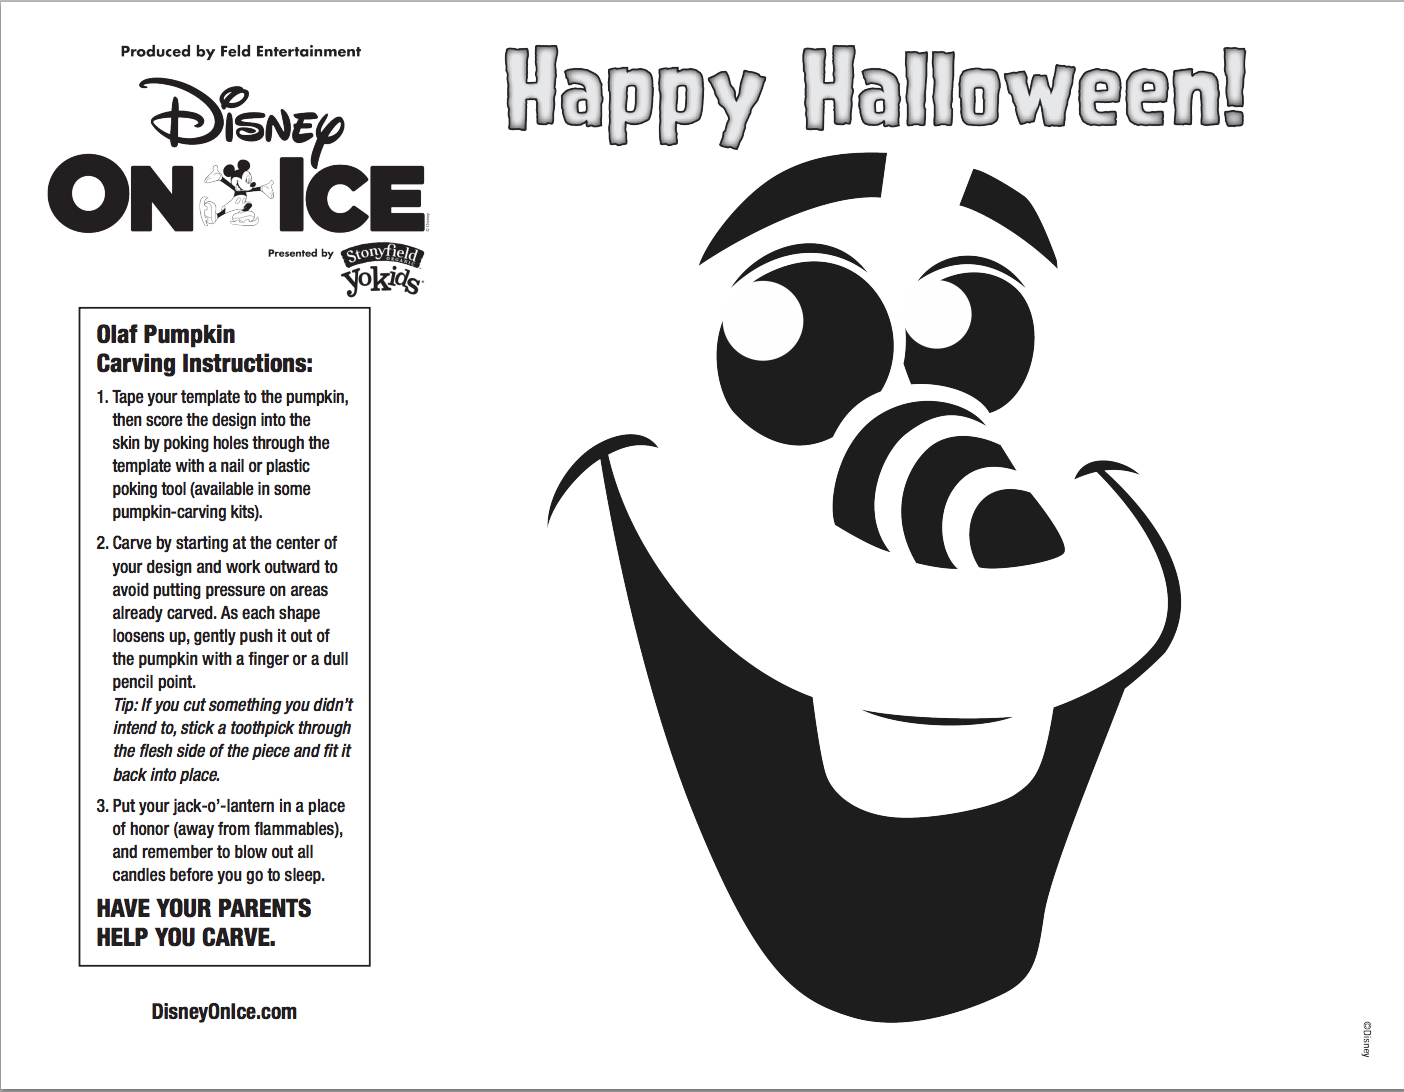 Free Disney Pumpkin Carving Templates - Free Pumpkin Carving Patterns Disney Printable